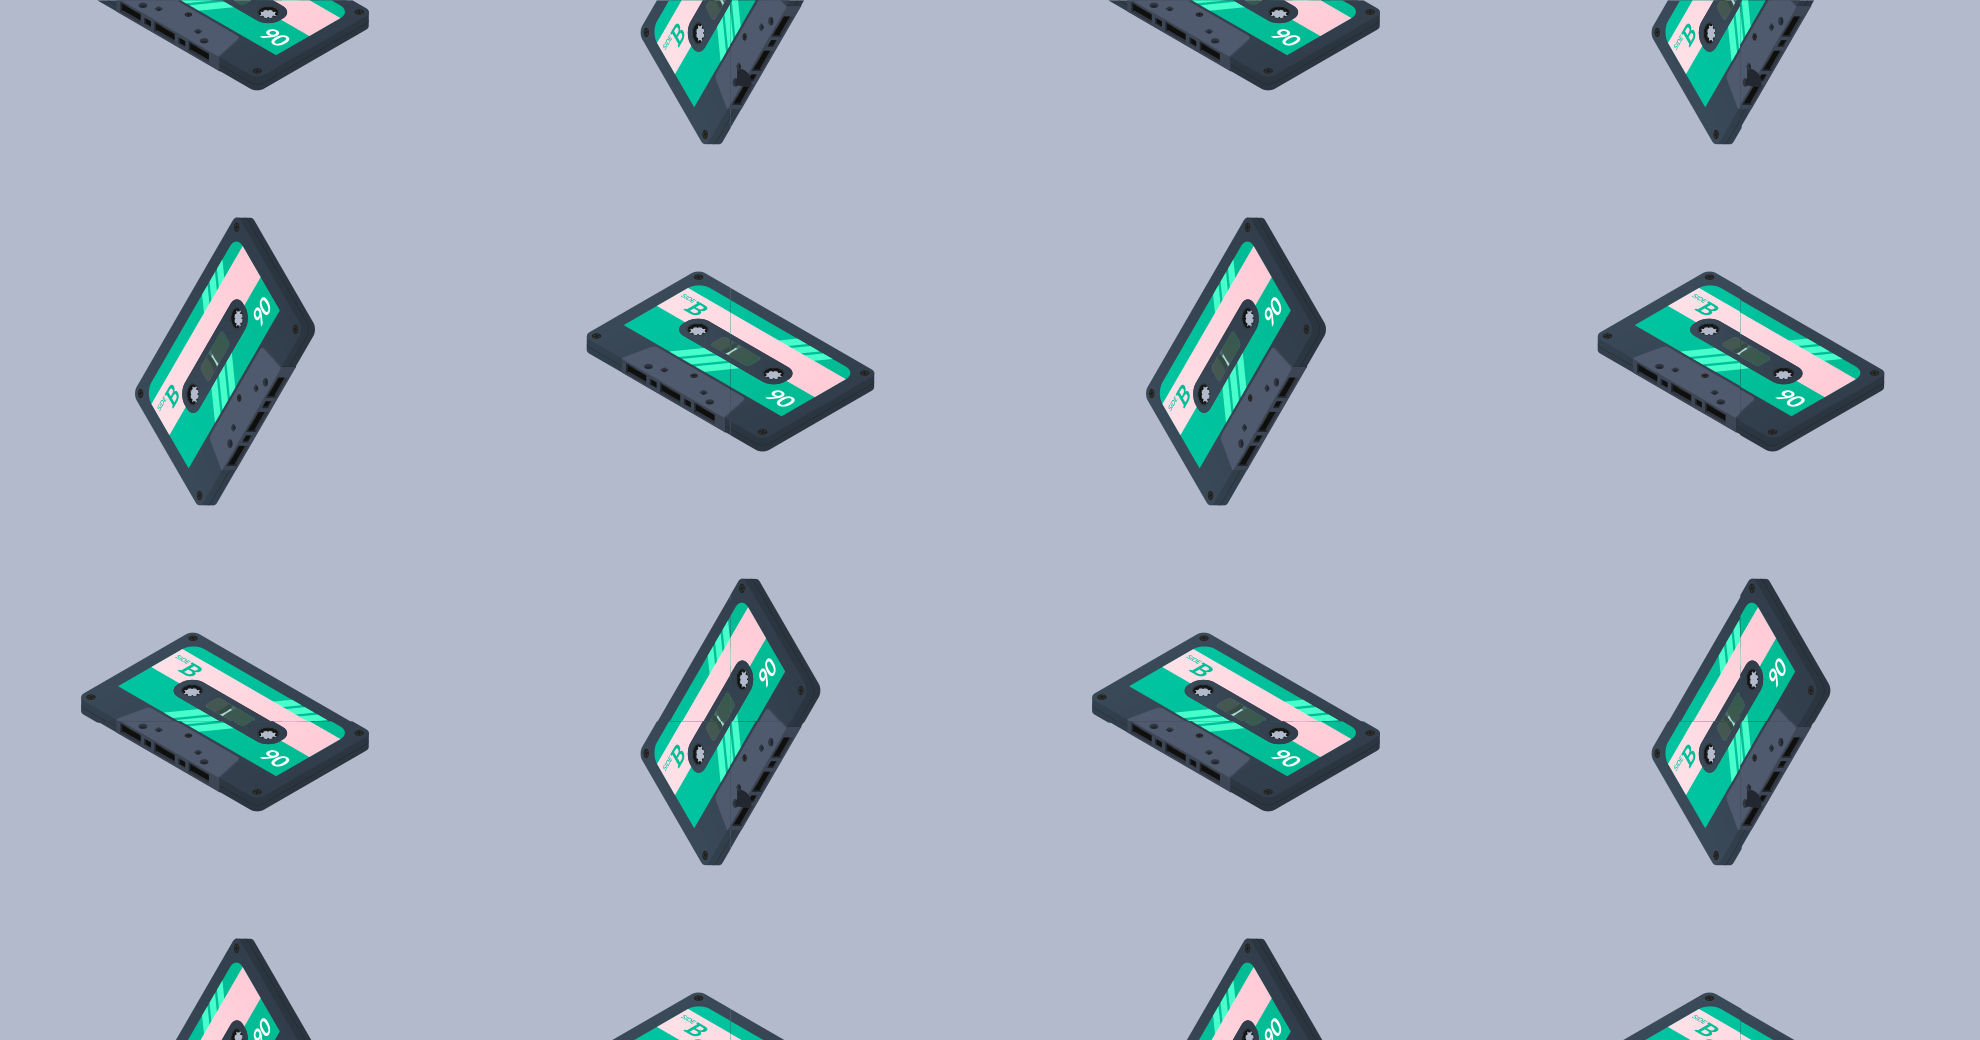 A wallpaper pattern of cassette tapes.